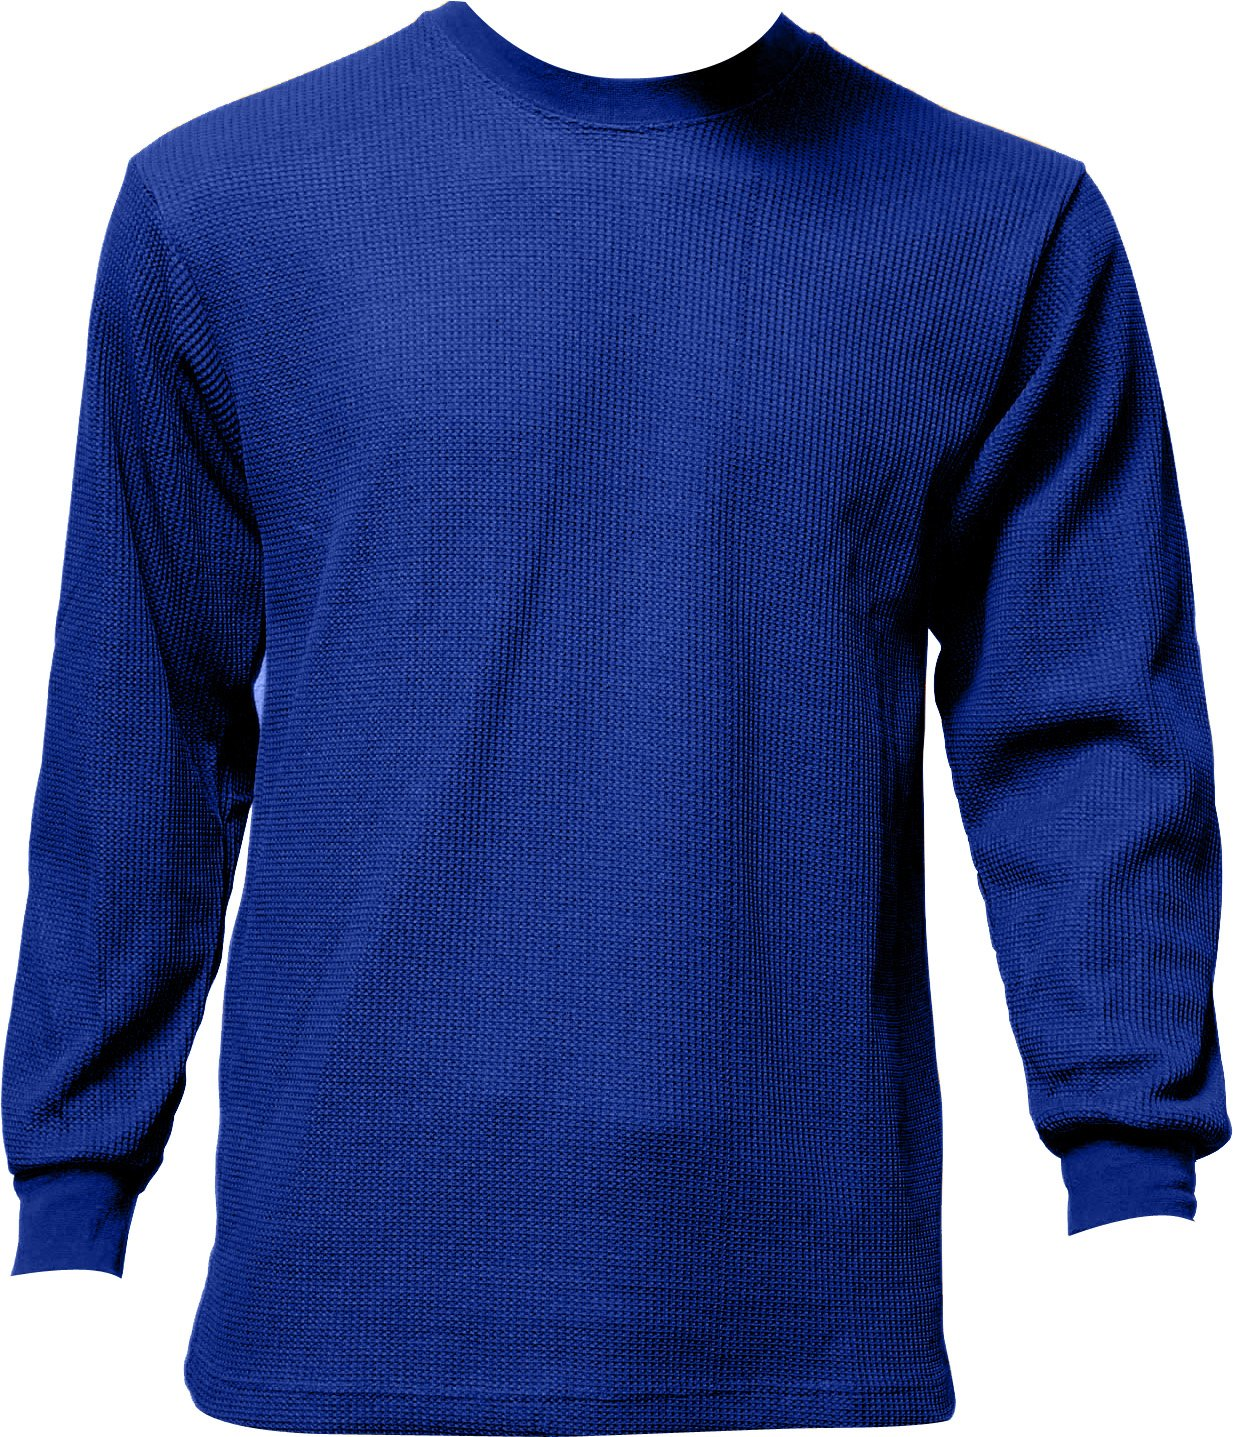 Men's Thermal Top Warm Winter 100% Cotton Many Colors, Blue, Medium